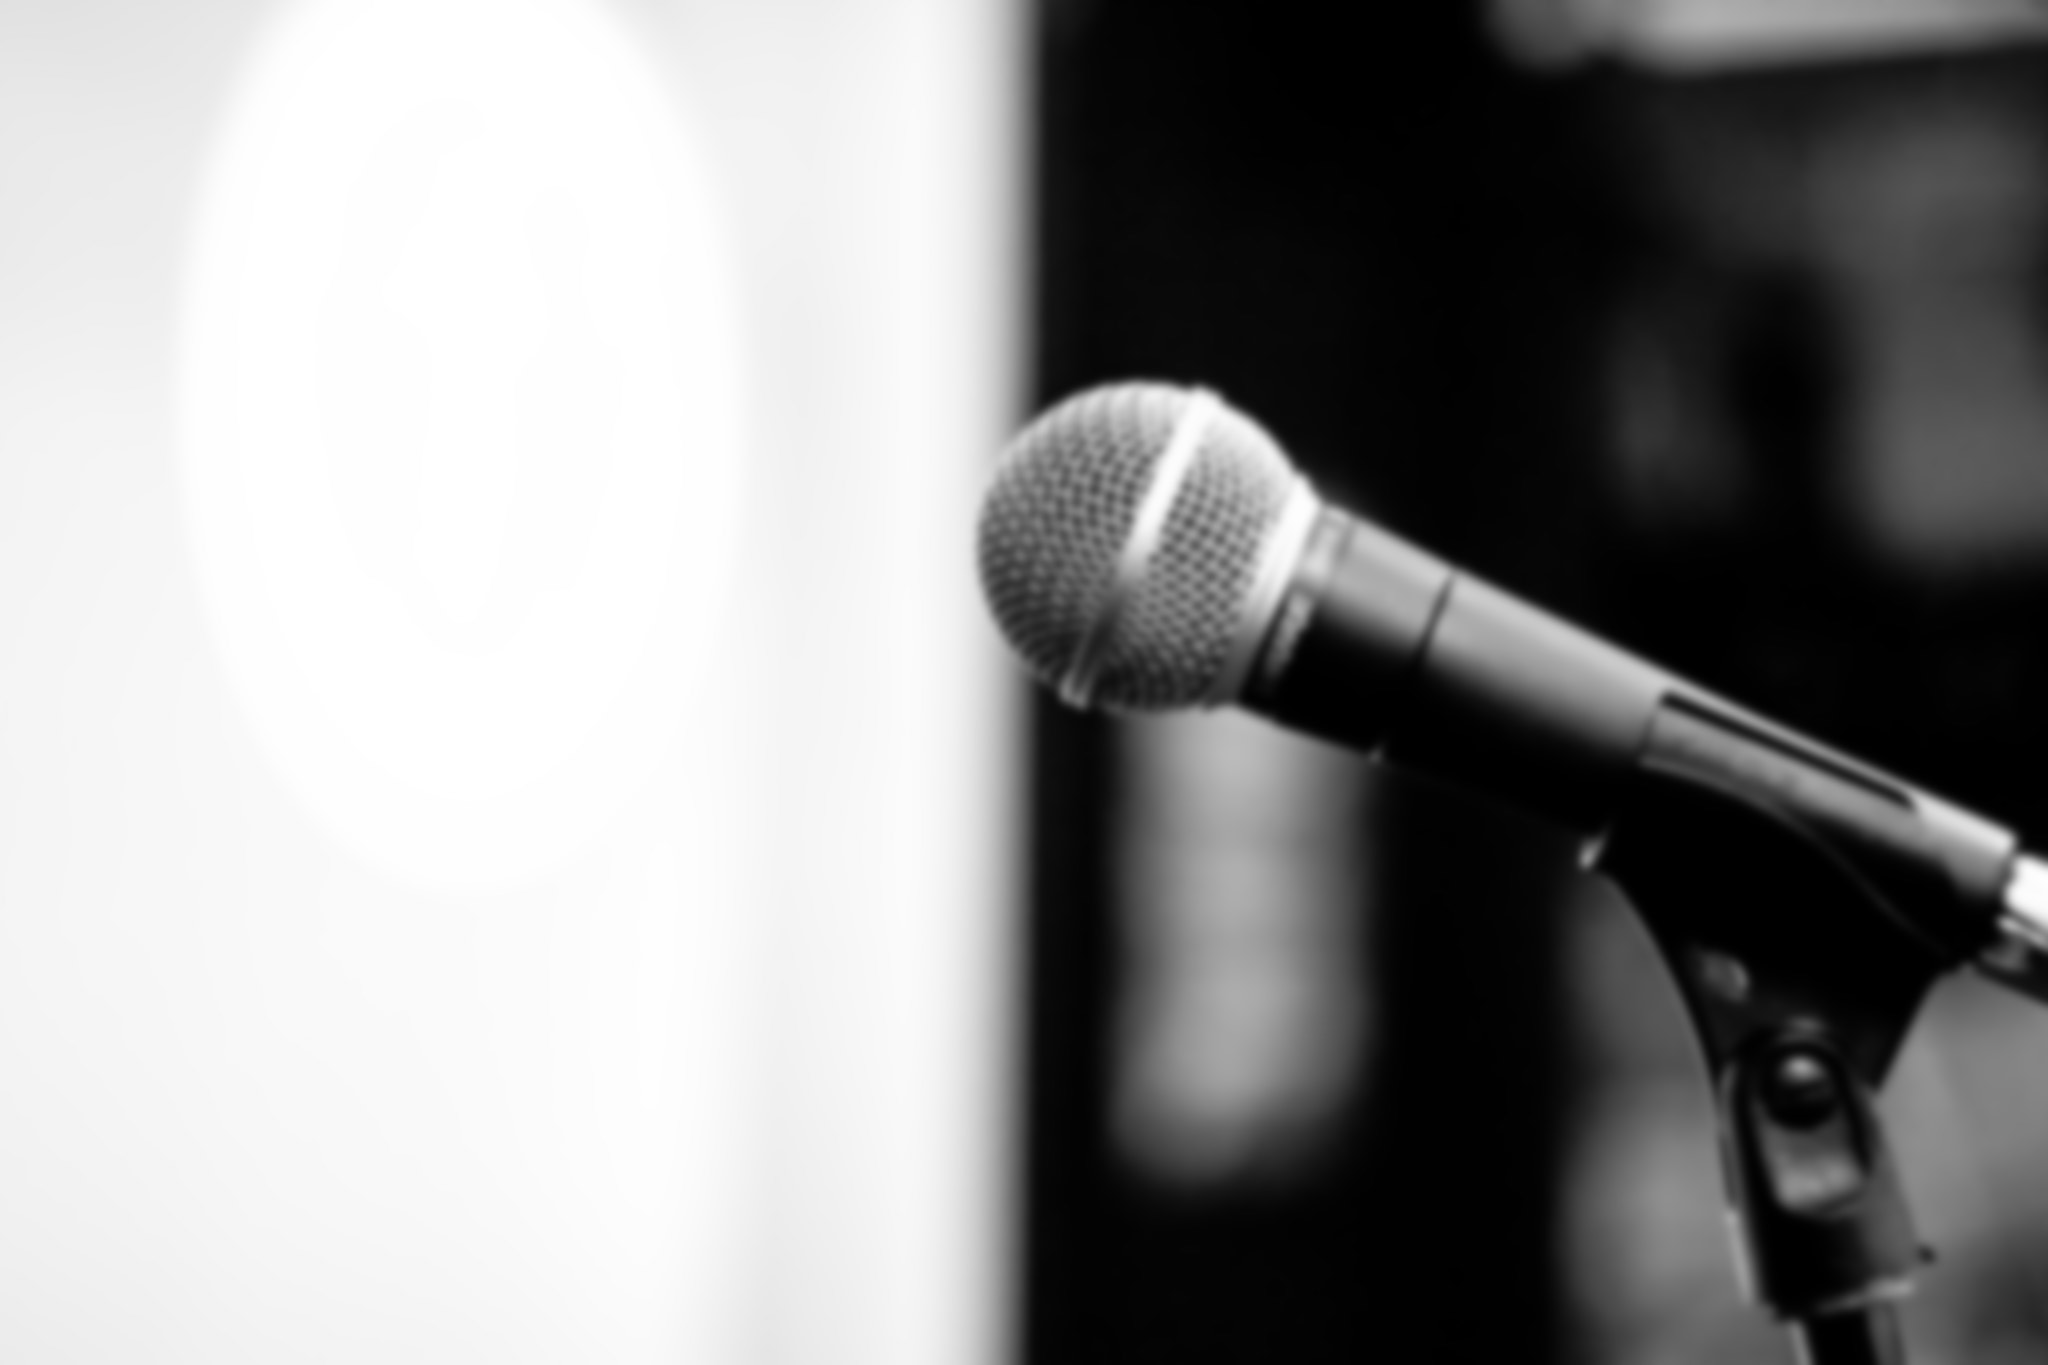 A slightly blurred microphone in black and white